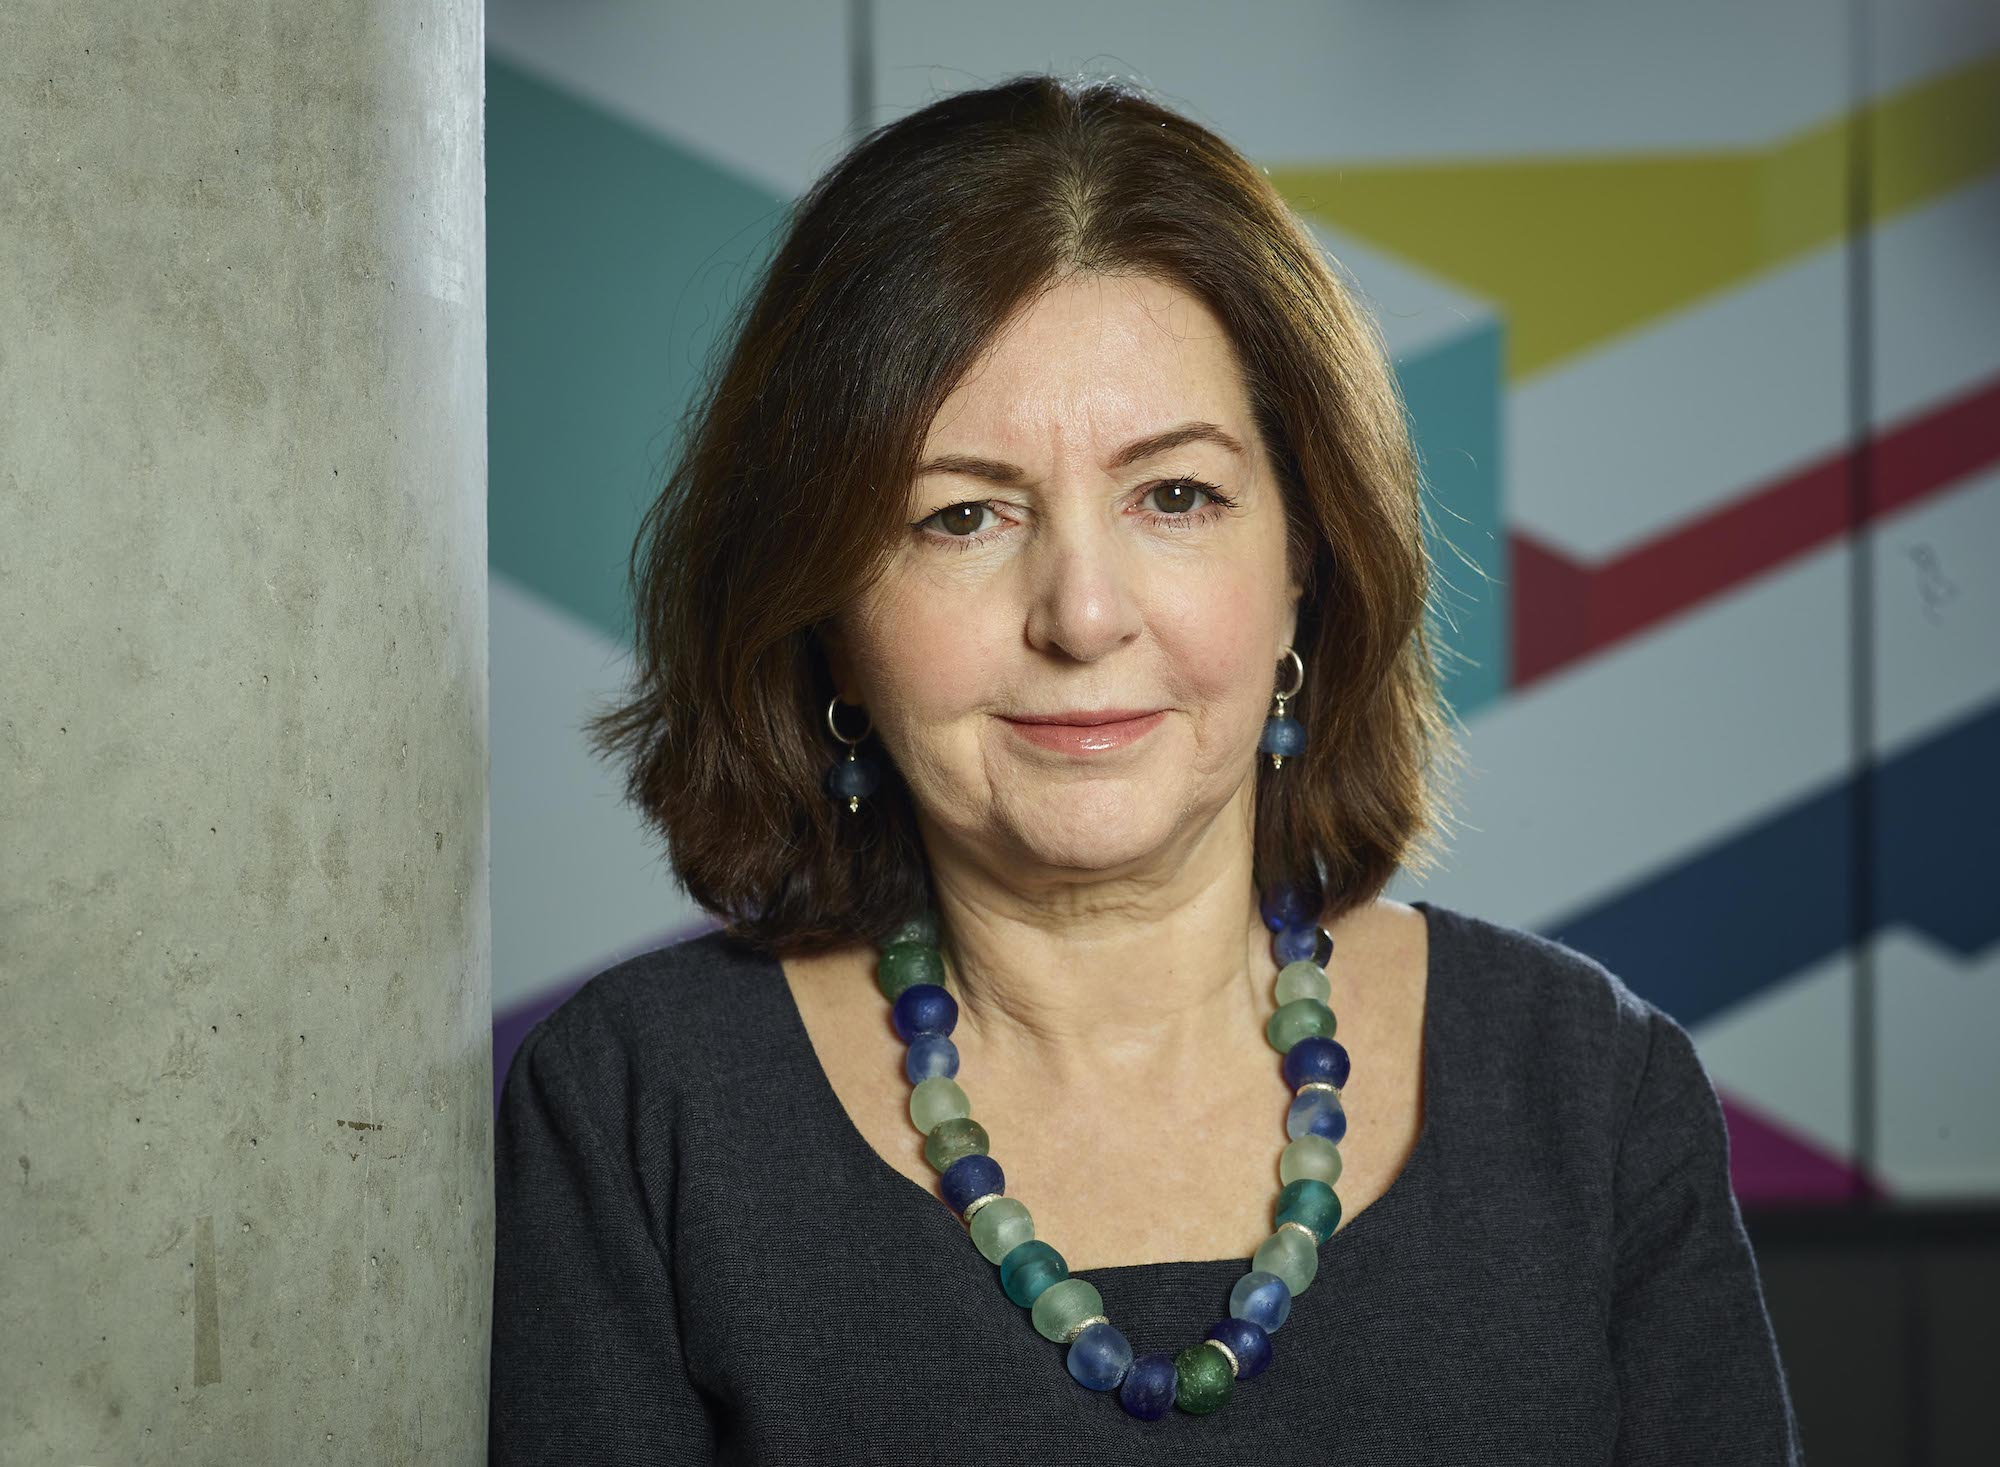 Reuters Seminar: Channel 4 Editor-at-Large Dorothy Byrne on public sector broadcasting and trust in dangerous times